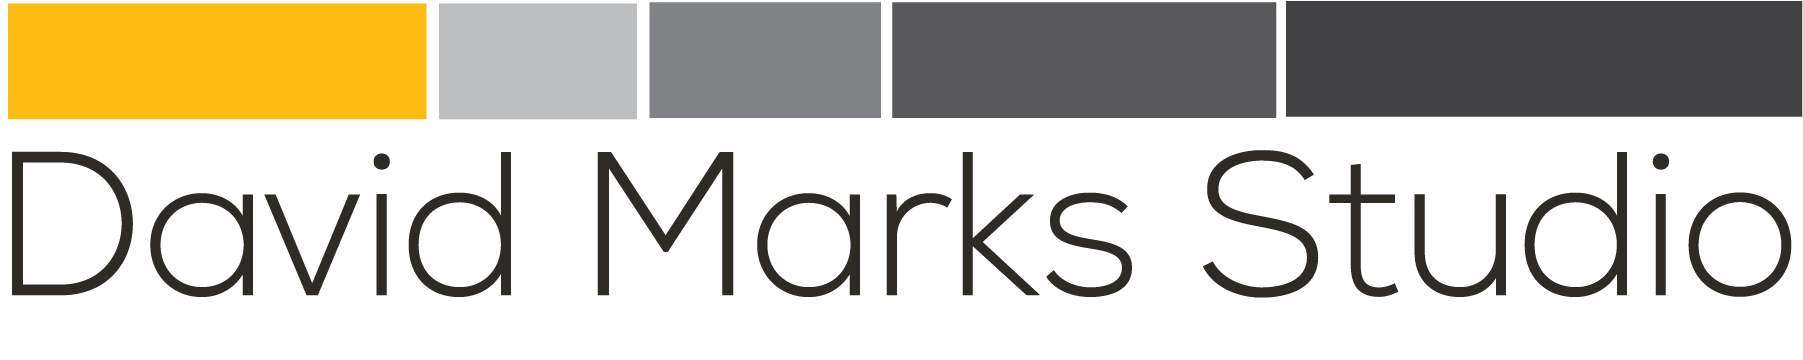 David Marks Studio Logo